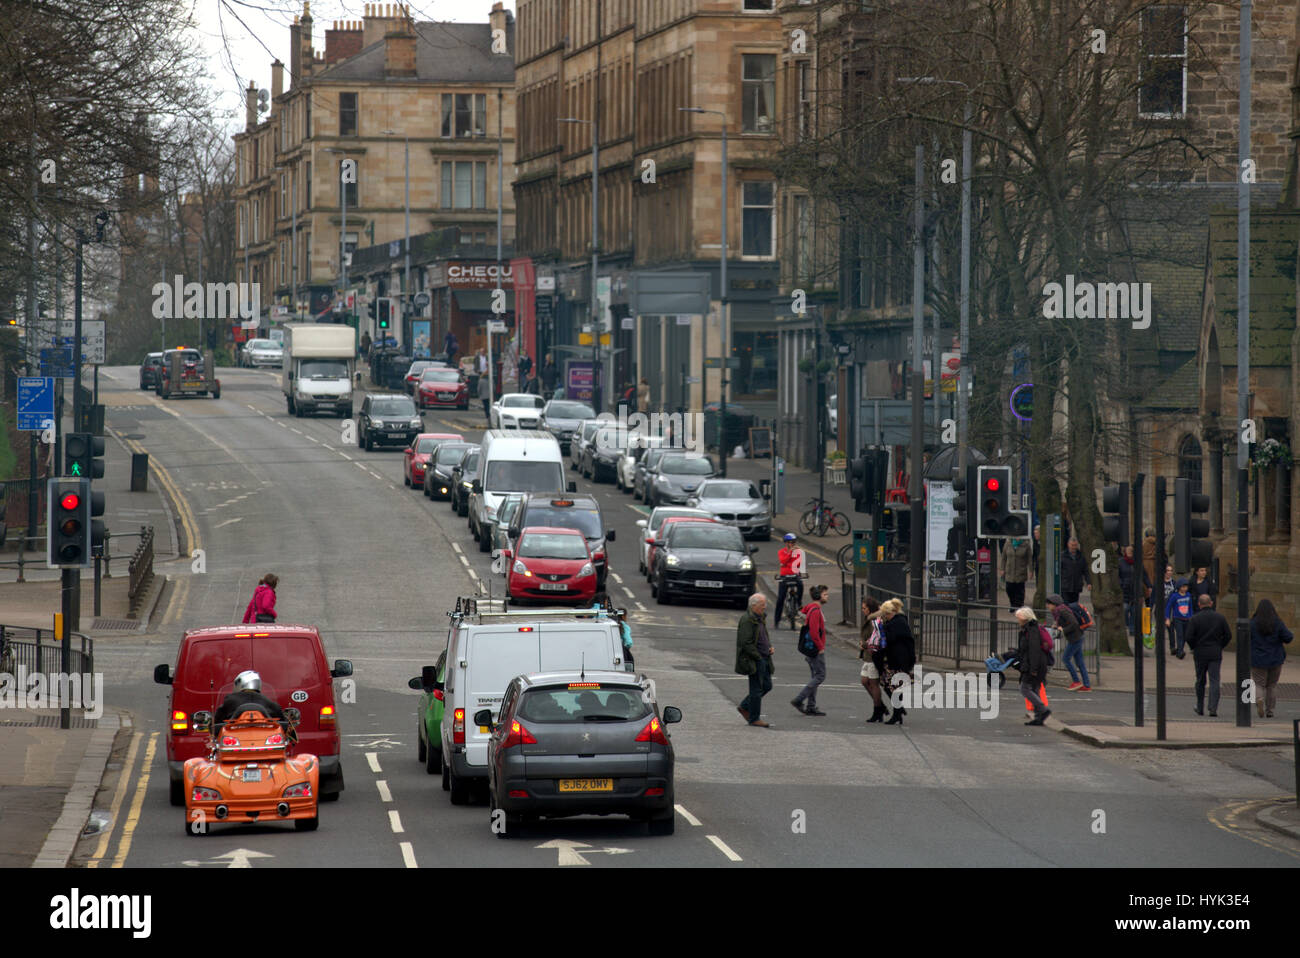 Great Western Road at Byres Road Glasgow Scotland street scene high viewpoint - Stock Image